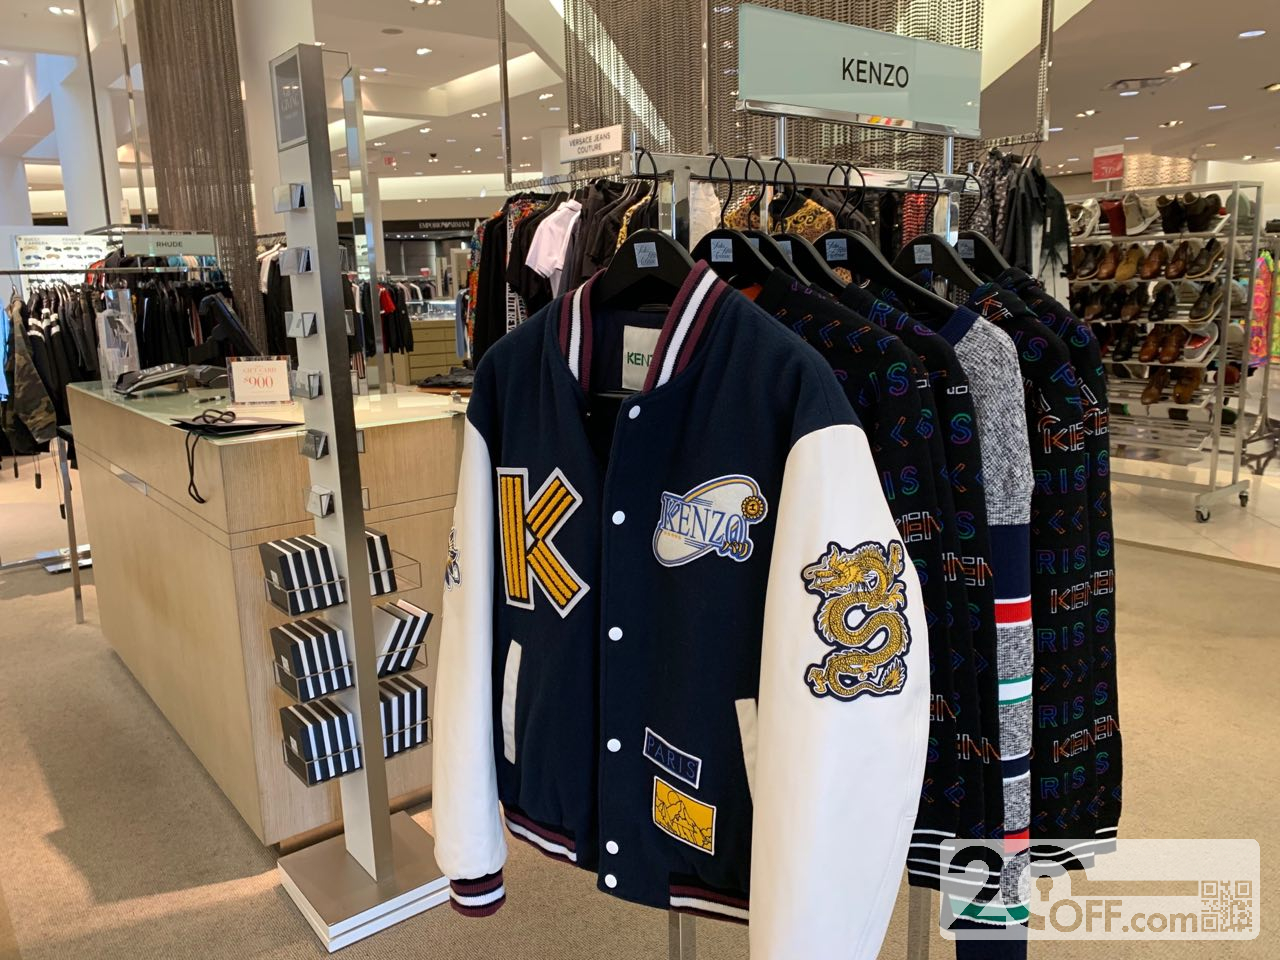 Kenzo Clothing At Saks Fifth Avenue